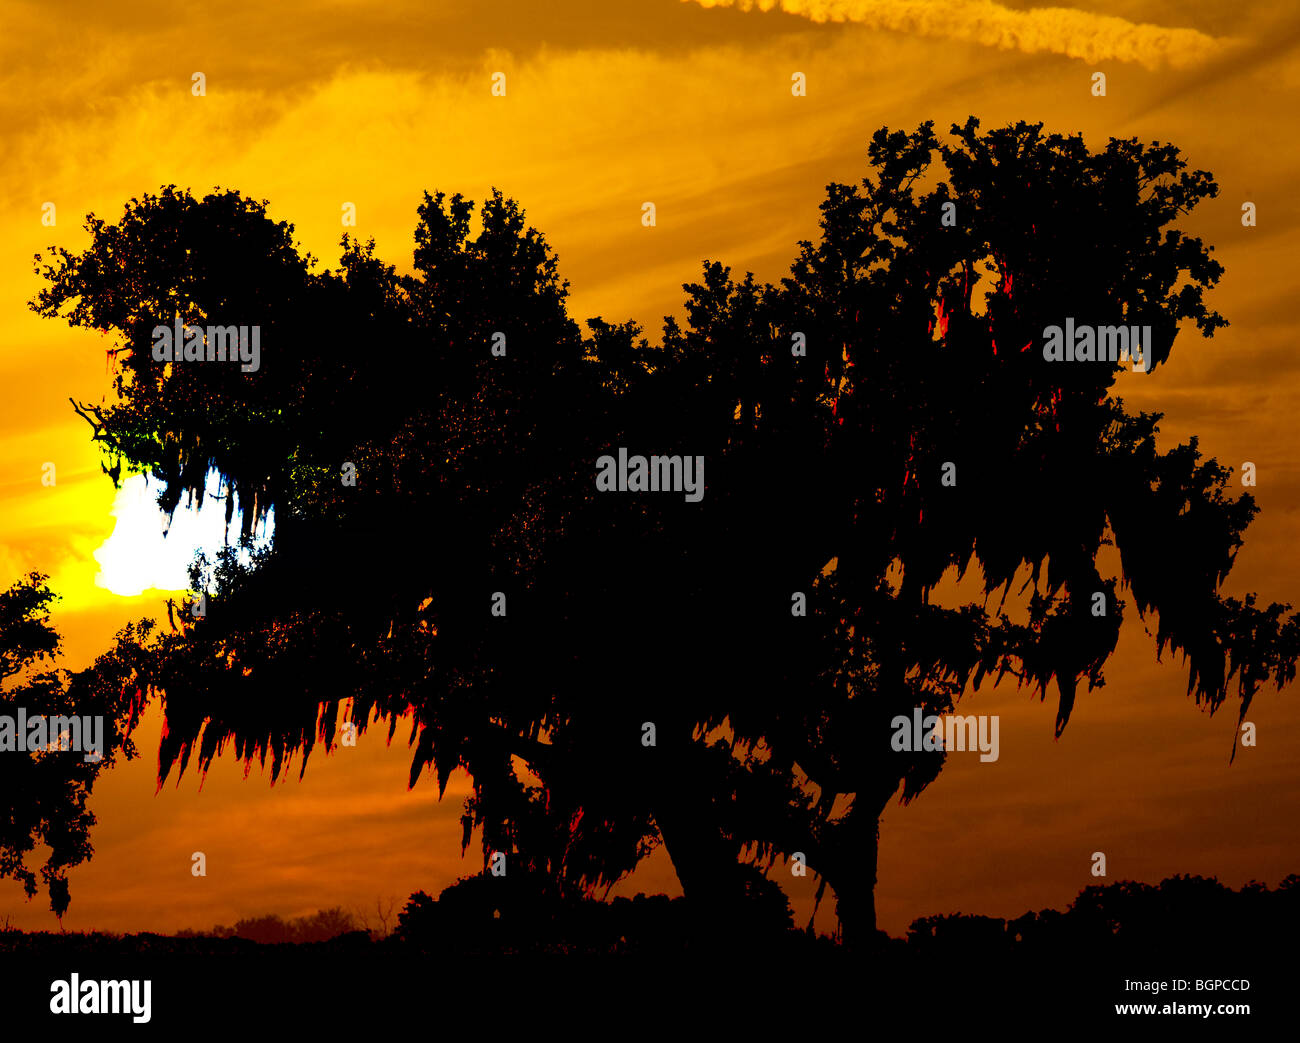 large sunset and moss draped oak trees - Stock Image